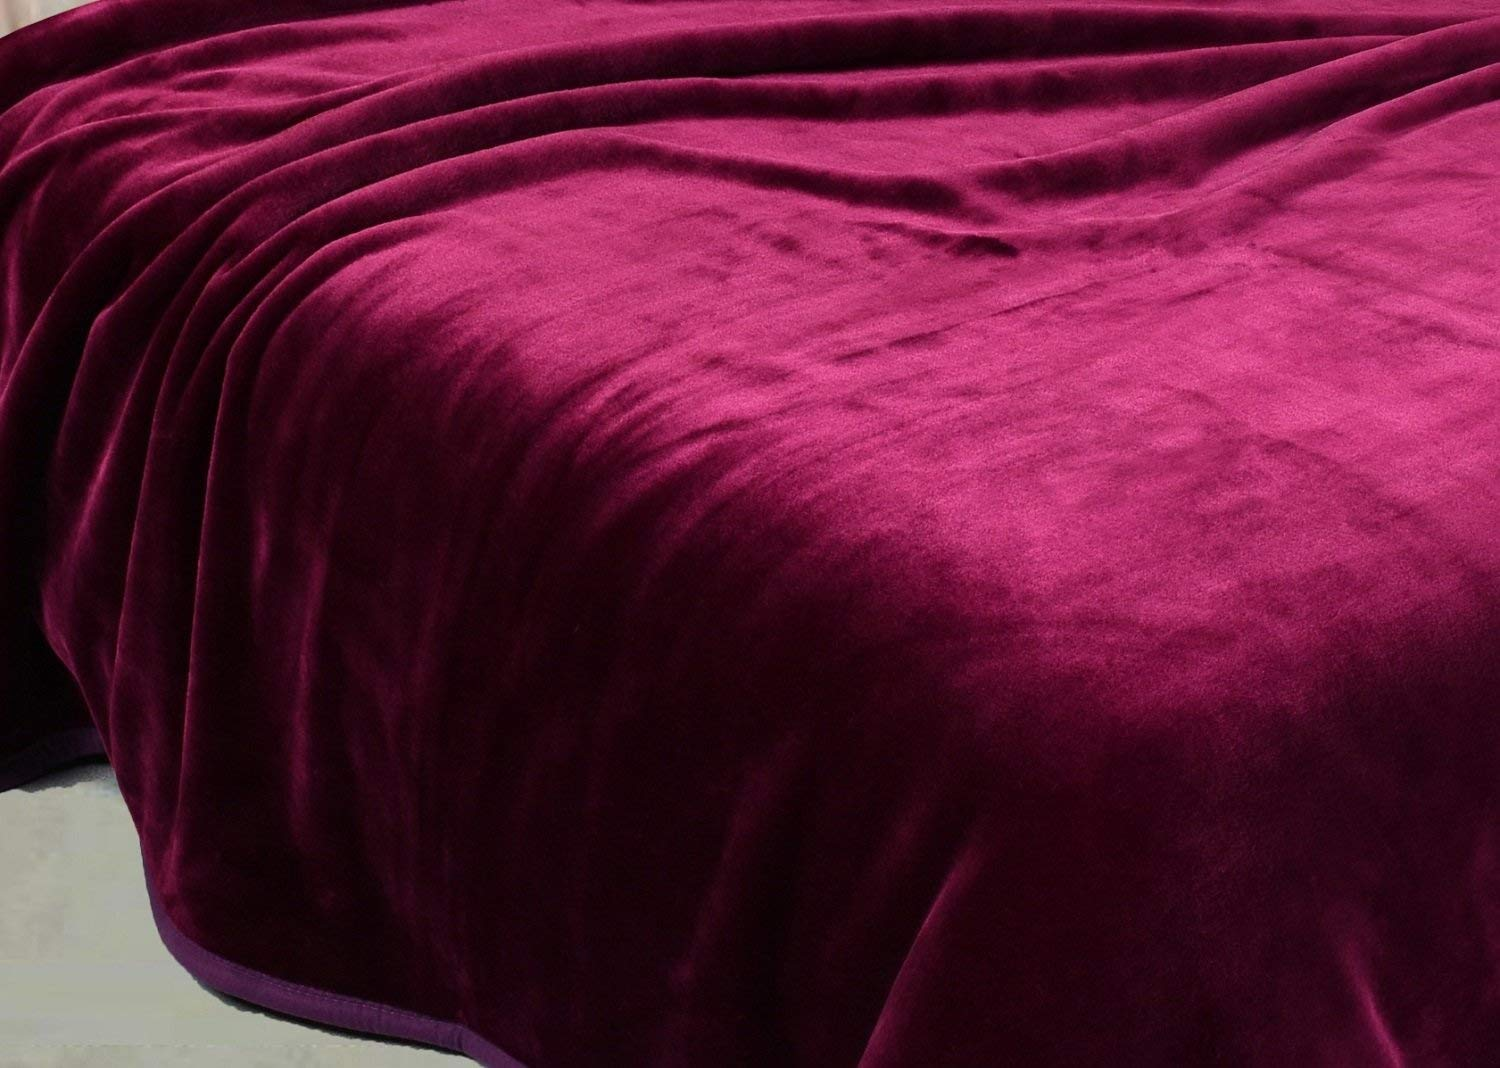 "Chezmoi Collection Heavy Thick One Ply Korean Style Faux Mink Blanket 8-Pound Oversized Queen 90x92"" (Queen, Purple)"